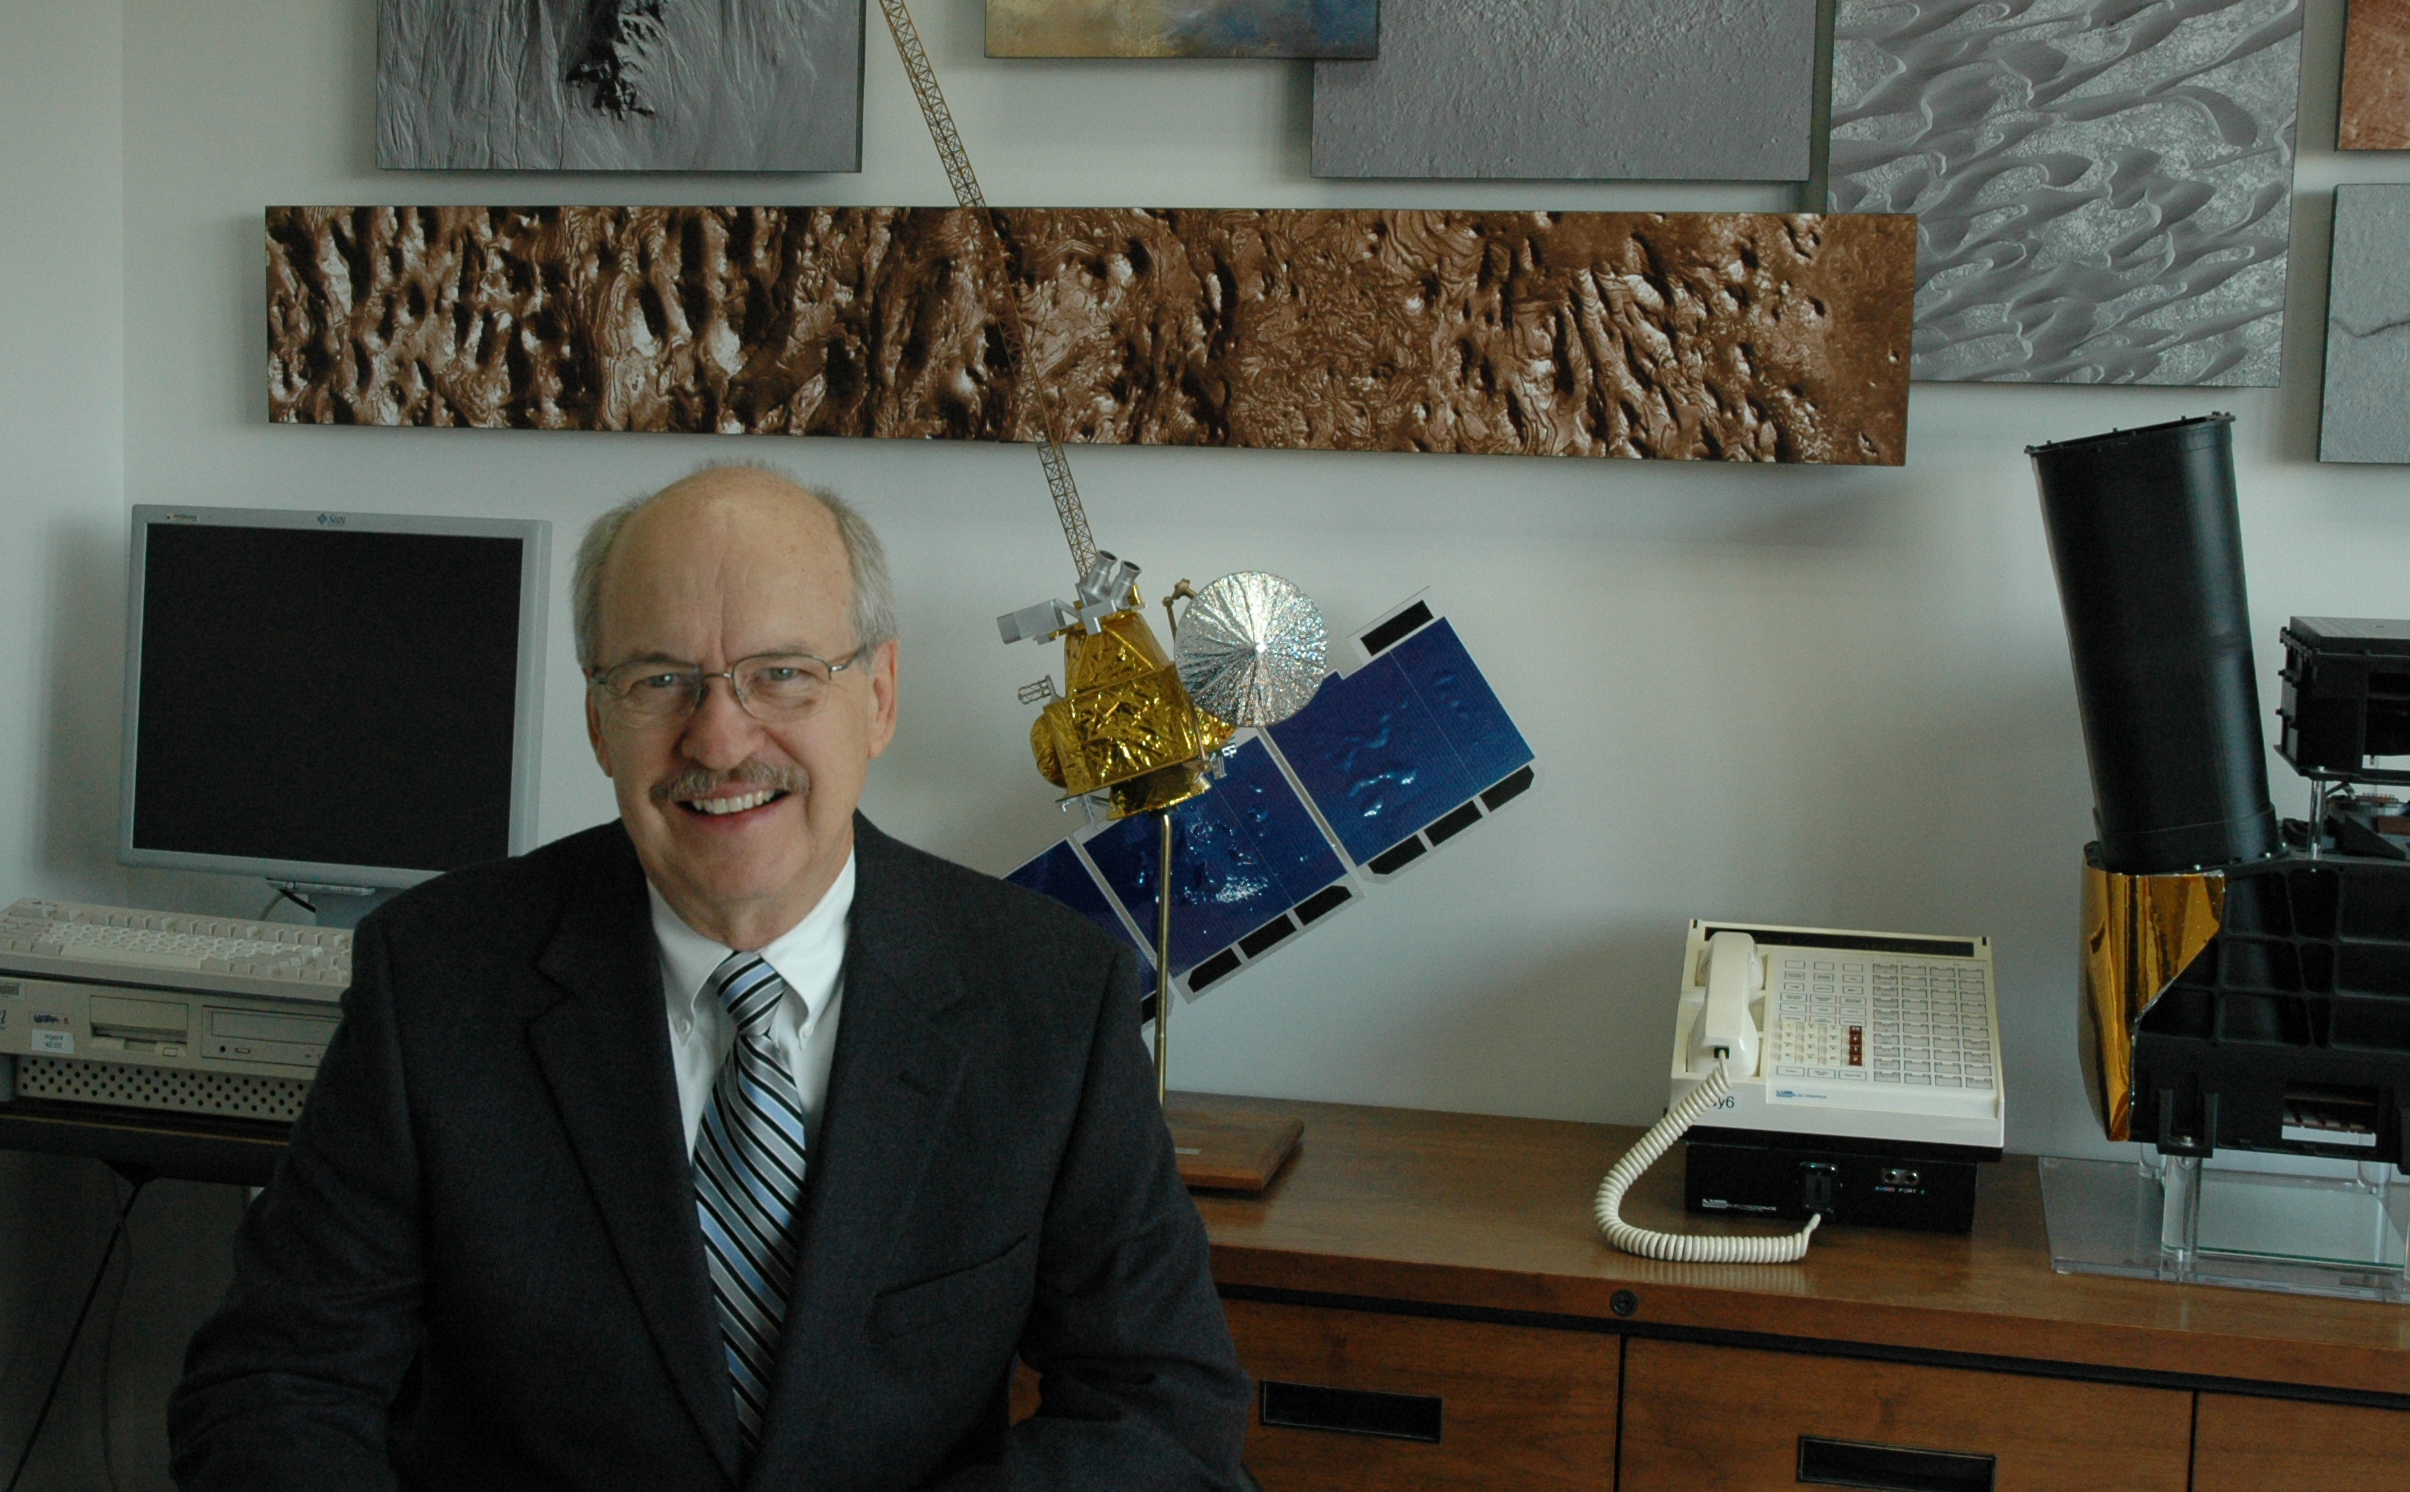 Mars Odyssey Project Manager Gaylon McSmith, of NASA's Jet Propulsion Laboratory